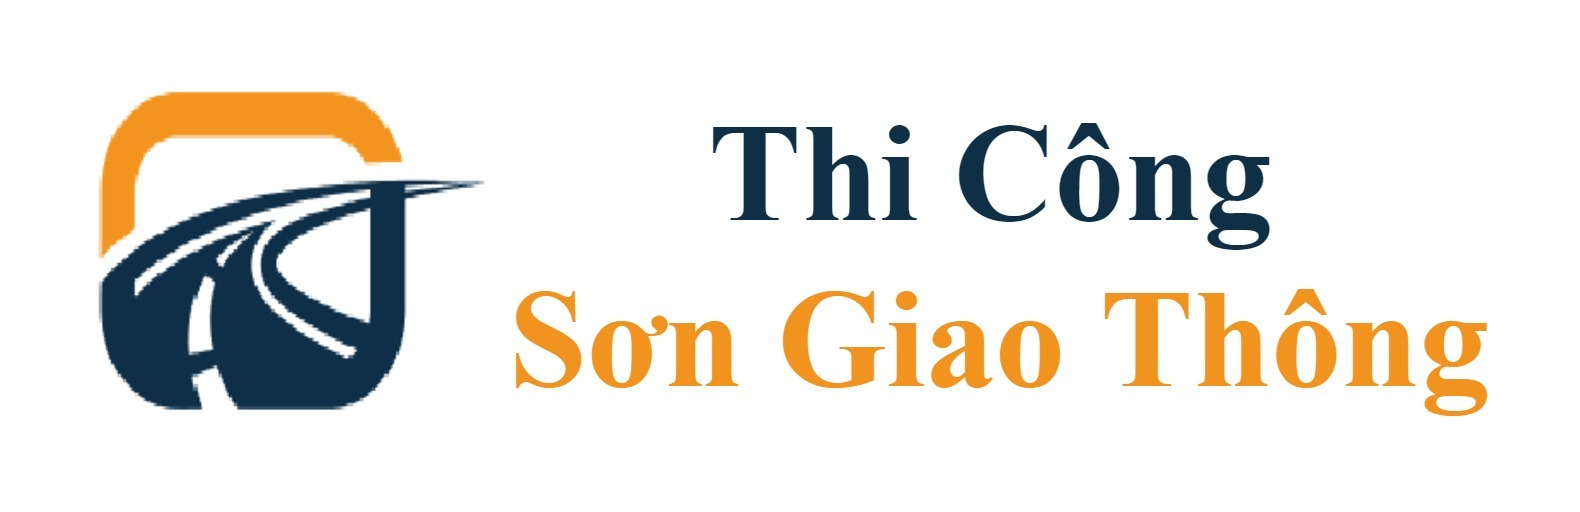 Thi Công Sơn Giao Thông (@thicongsongiaothong) Cover Image